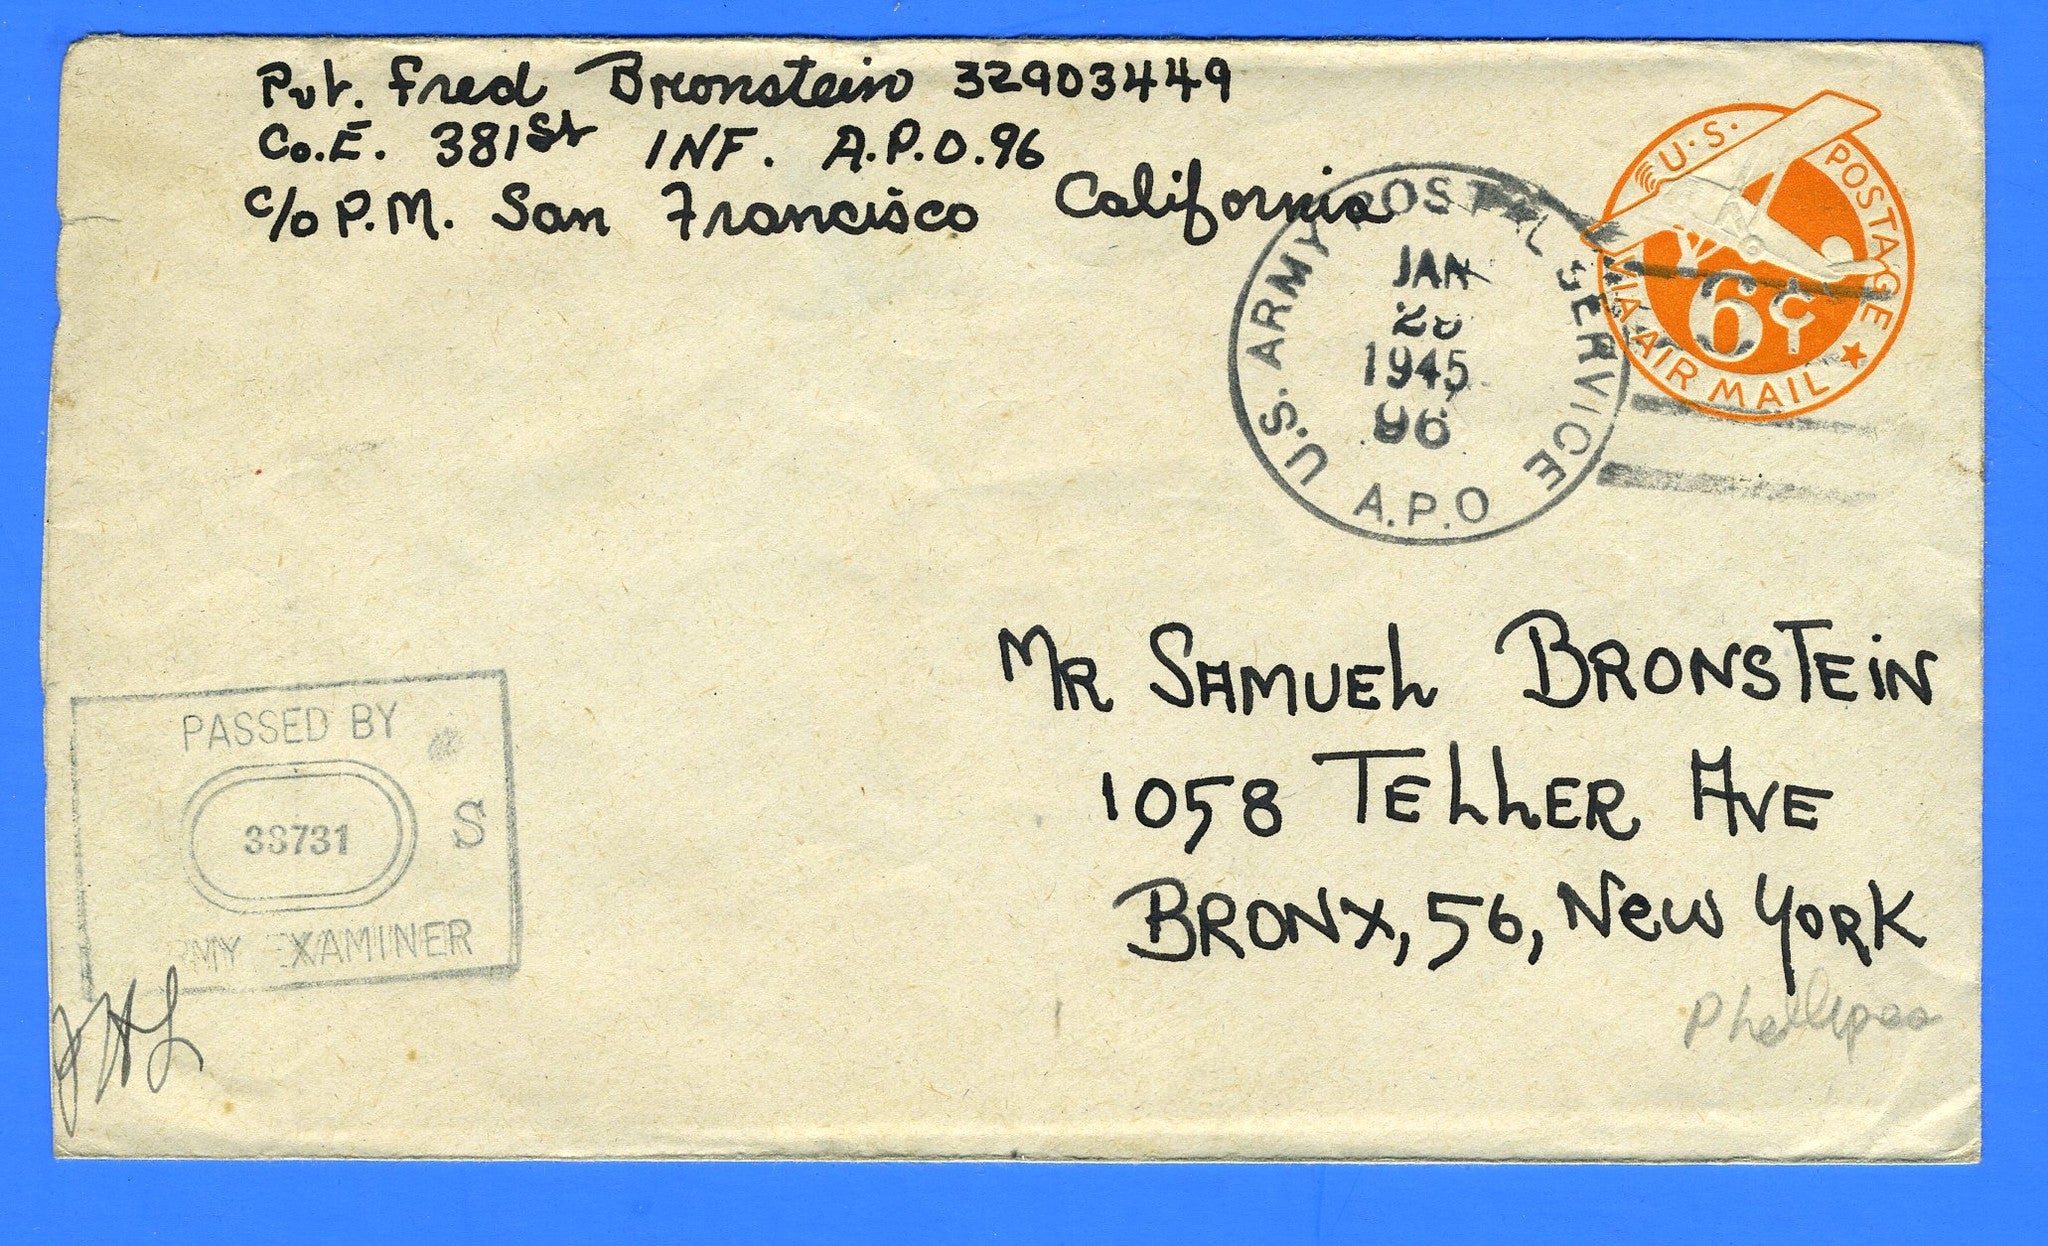 Soldier's Censored Mail APO 96 Leyte, Philippines January 29, 1945